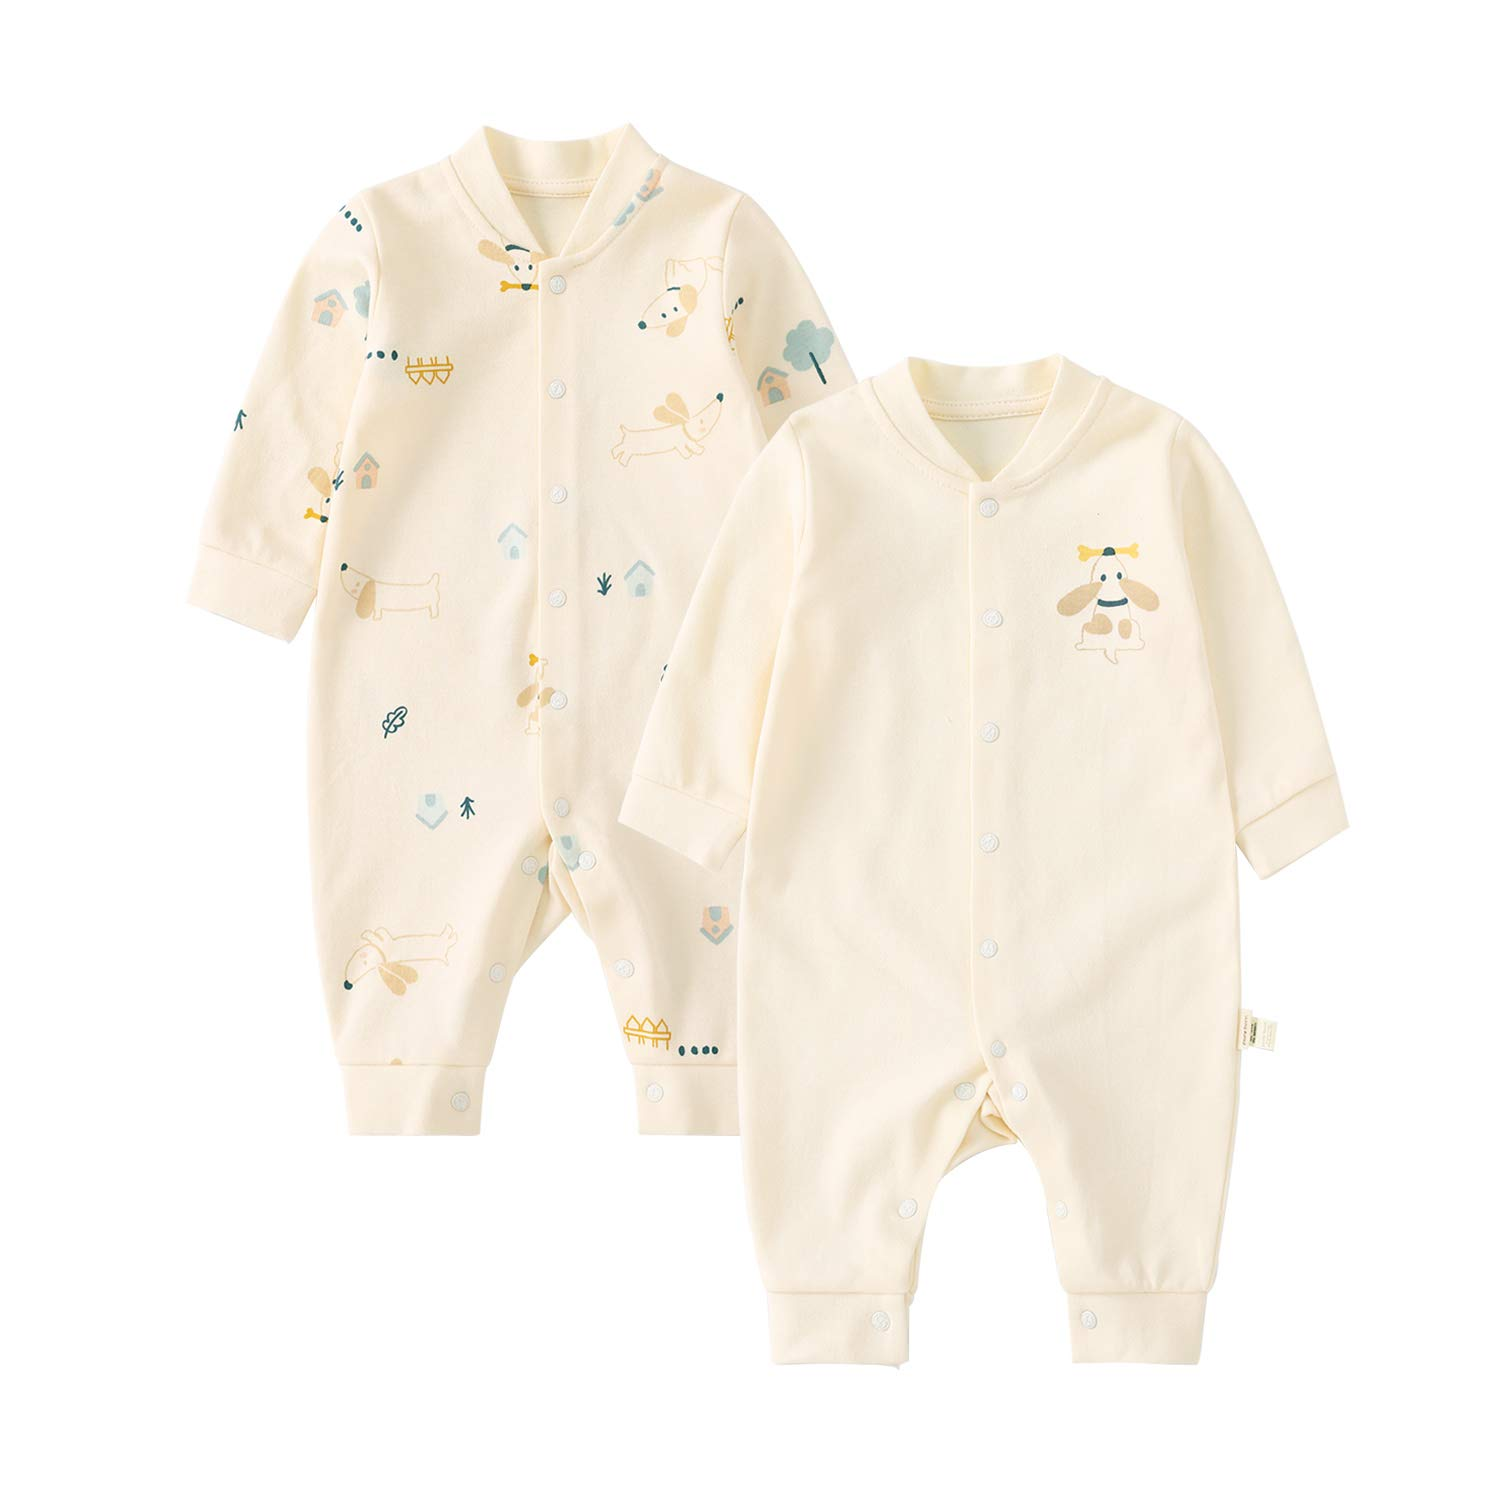 pureborn 2-Pack Baby Cotton Cute Long Sleeve Jumpsuit Snap Front Coveralls